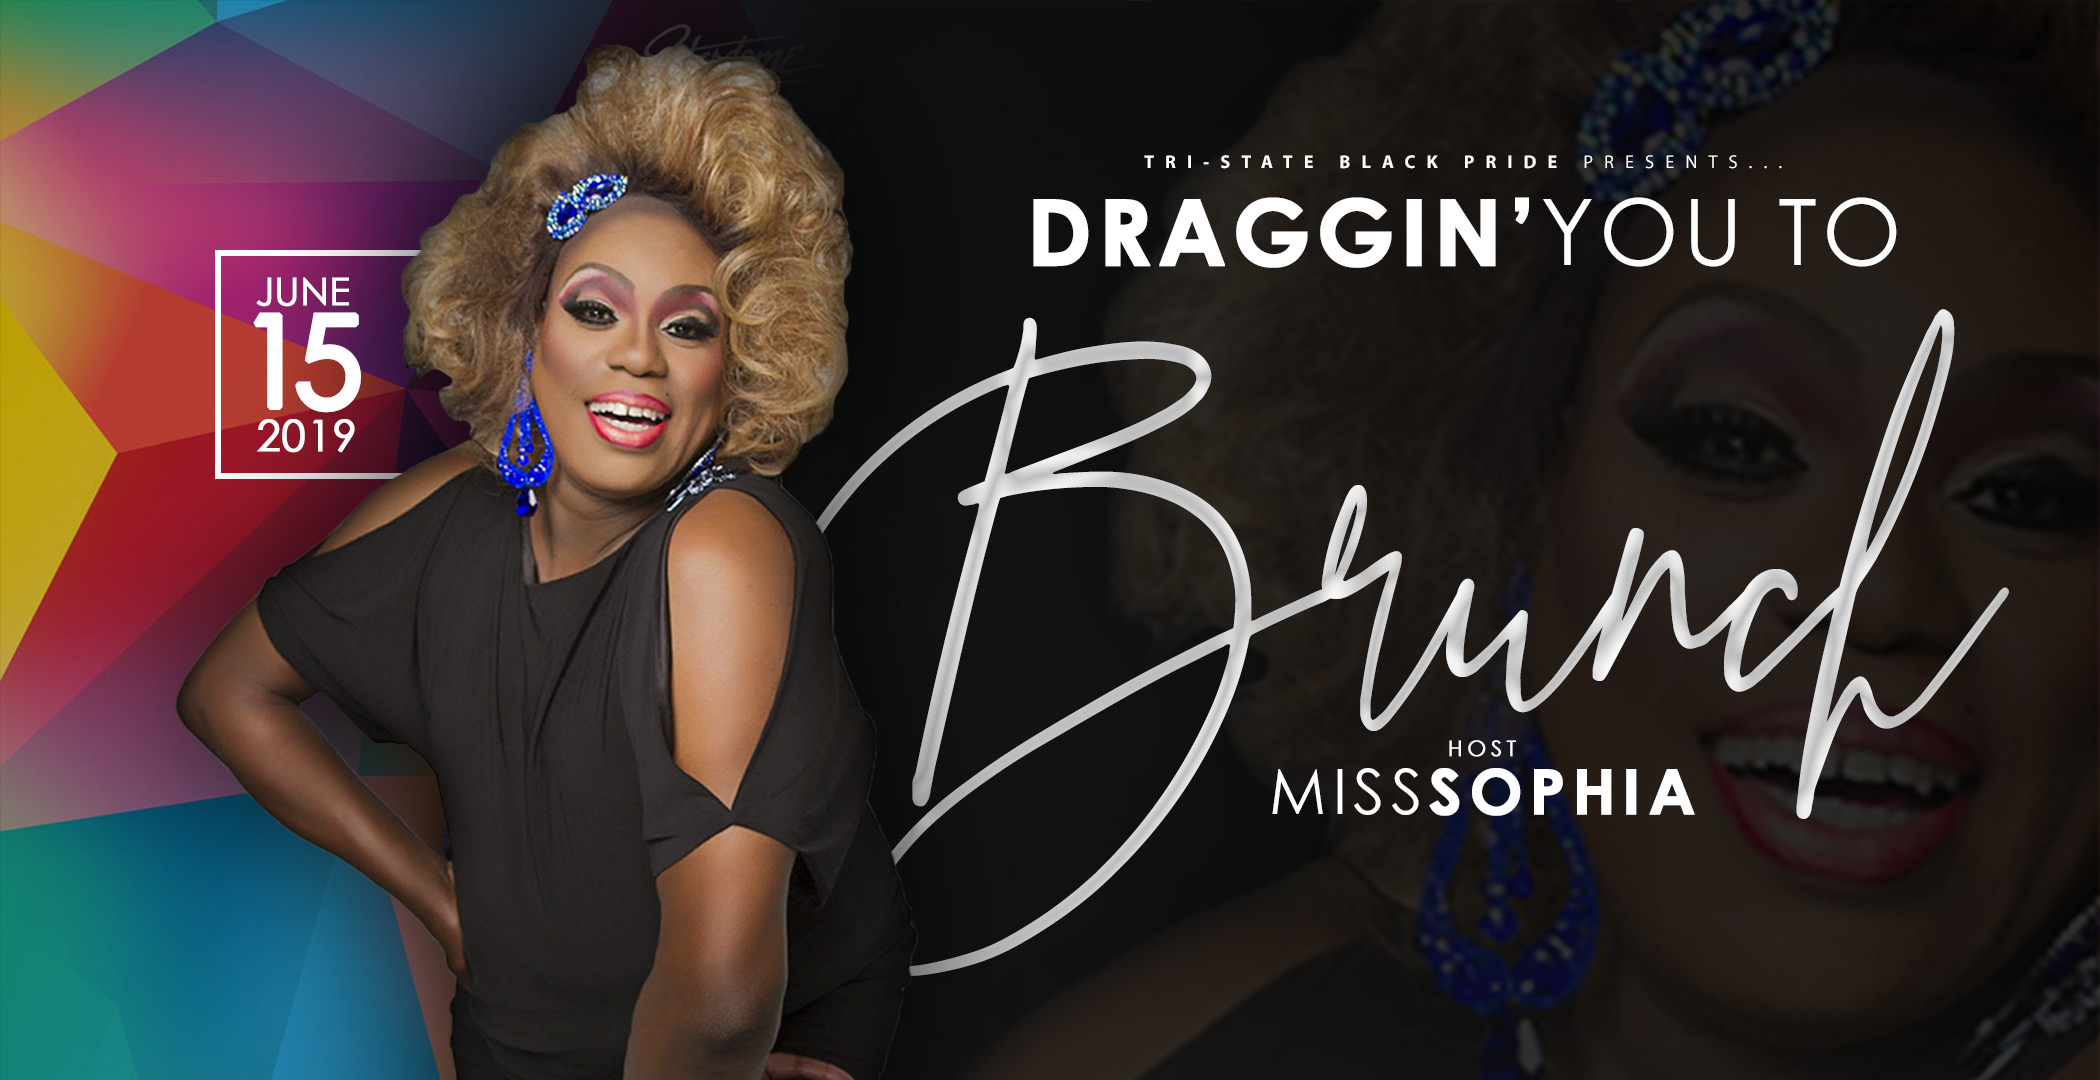 Drag Brunch Eventbrite